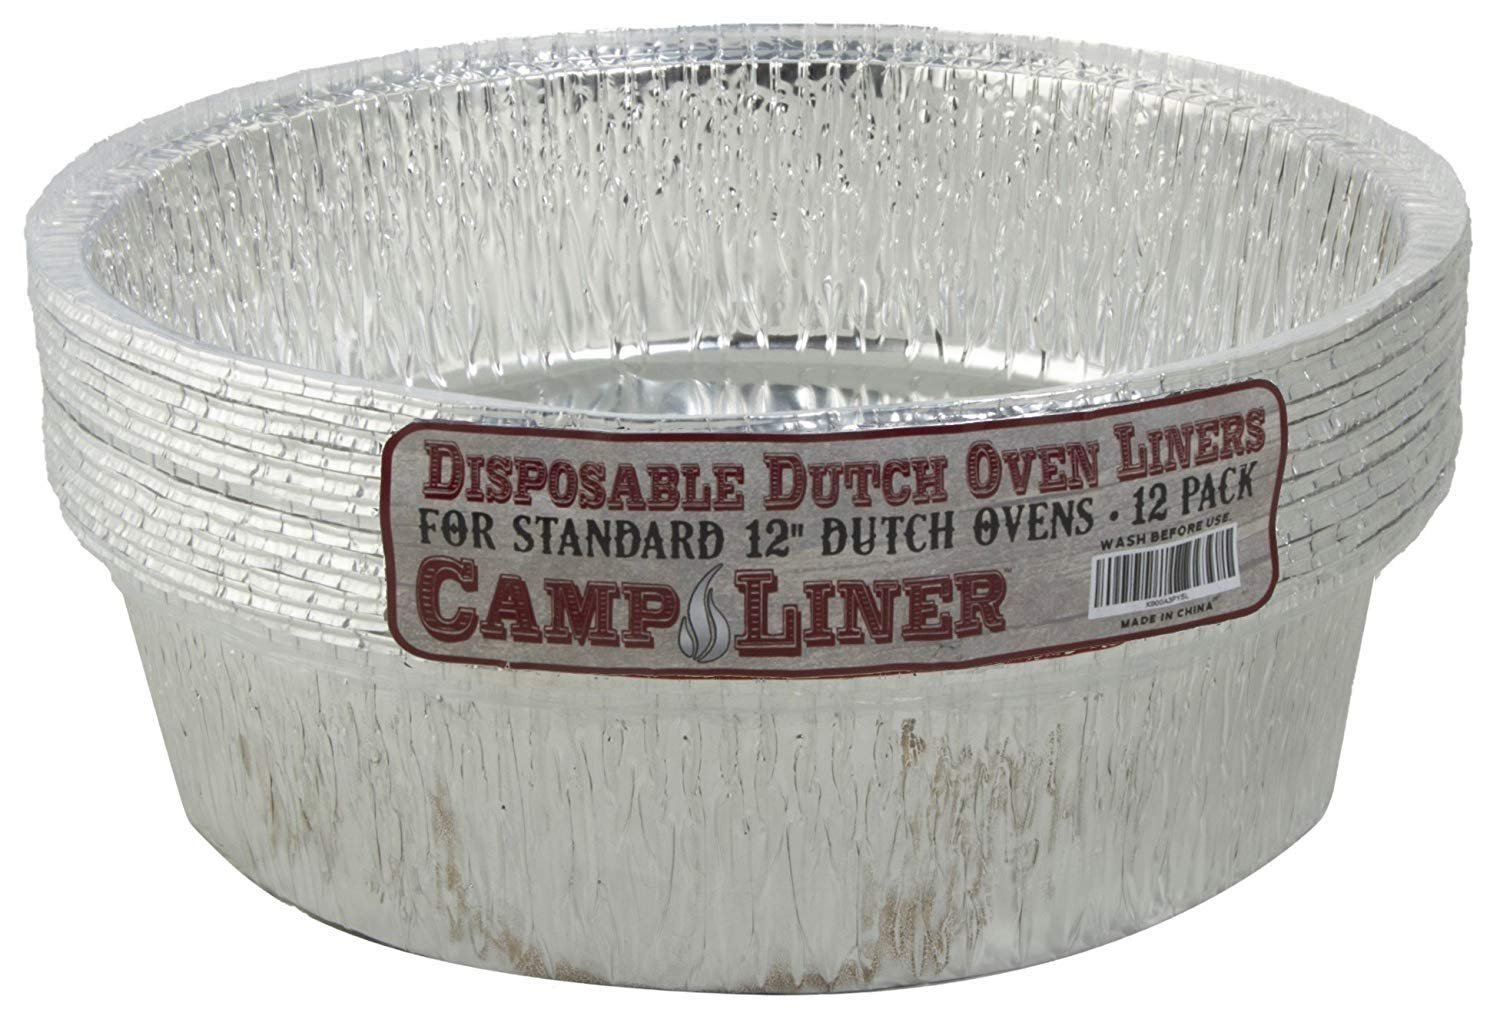 Campliner Disposable Foil Dutch Oven Liner, 12 Pack 12 Inch 6Q liners, no More Cleaning or Seasoning, Perfect Accessory. Lodge, Camp Chef.